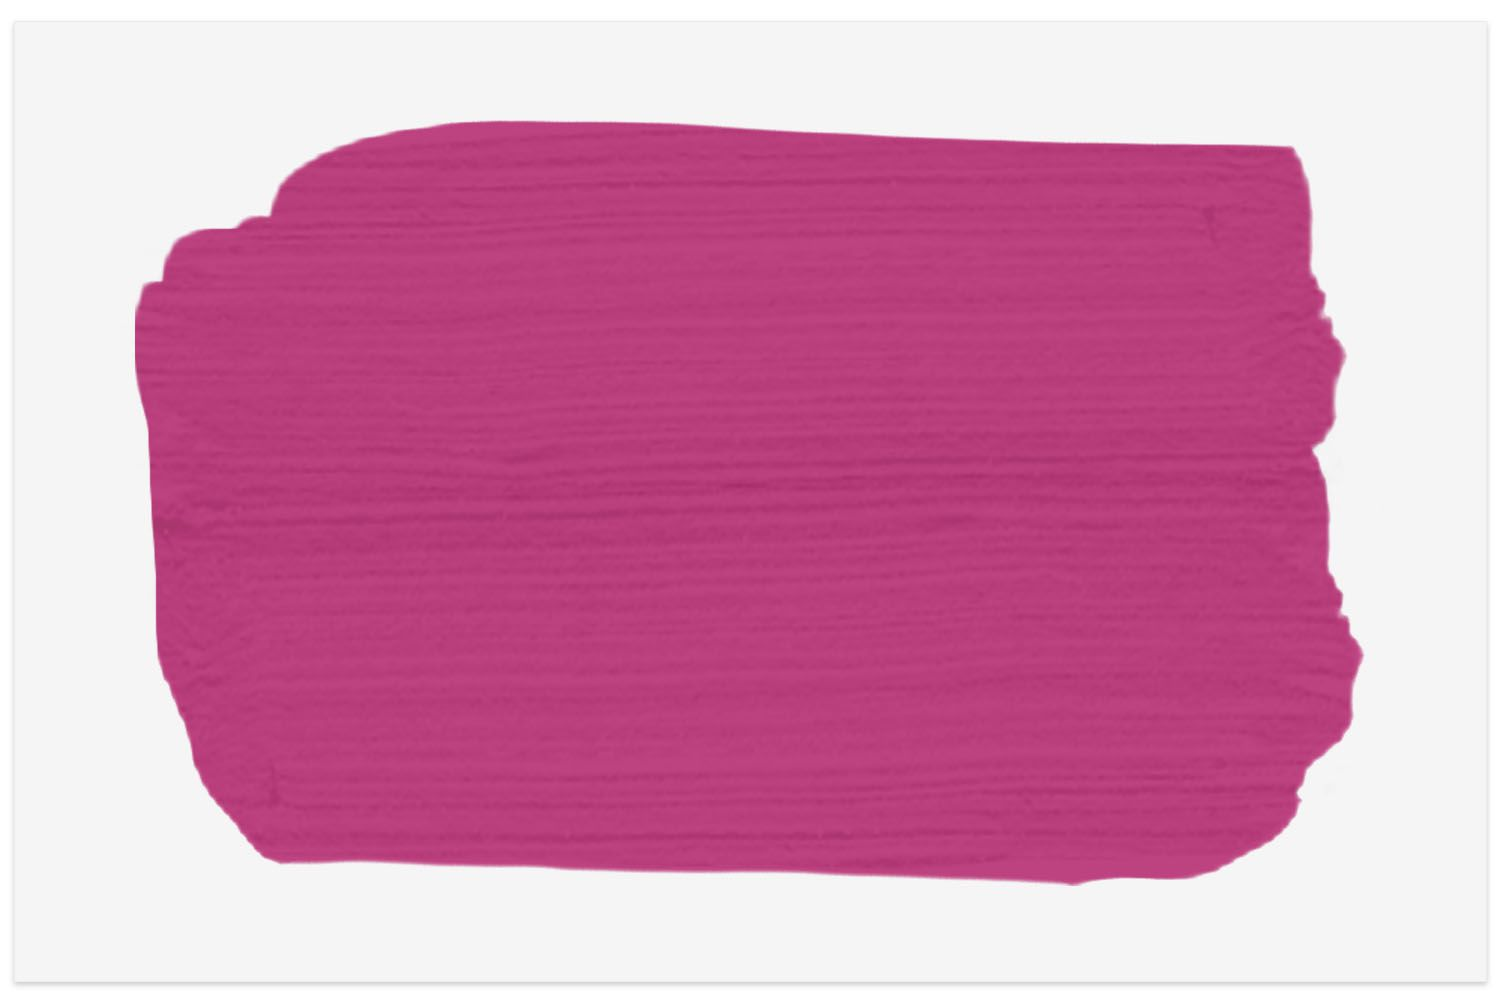 PINK SWATCHES